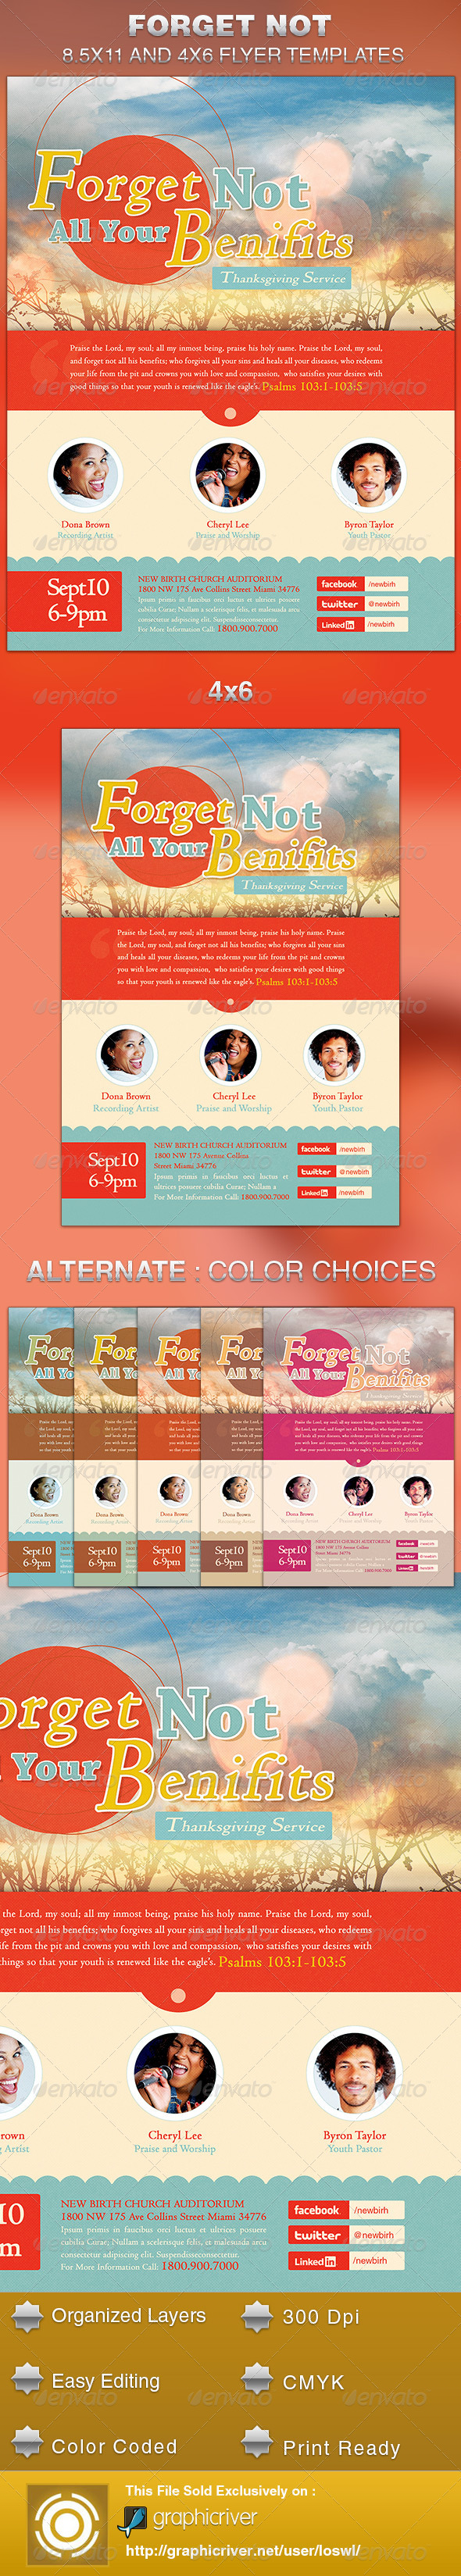 GraphicRiver Forget Not All Your Benefits Church Flyer Template 5572532